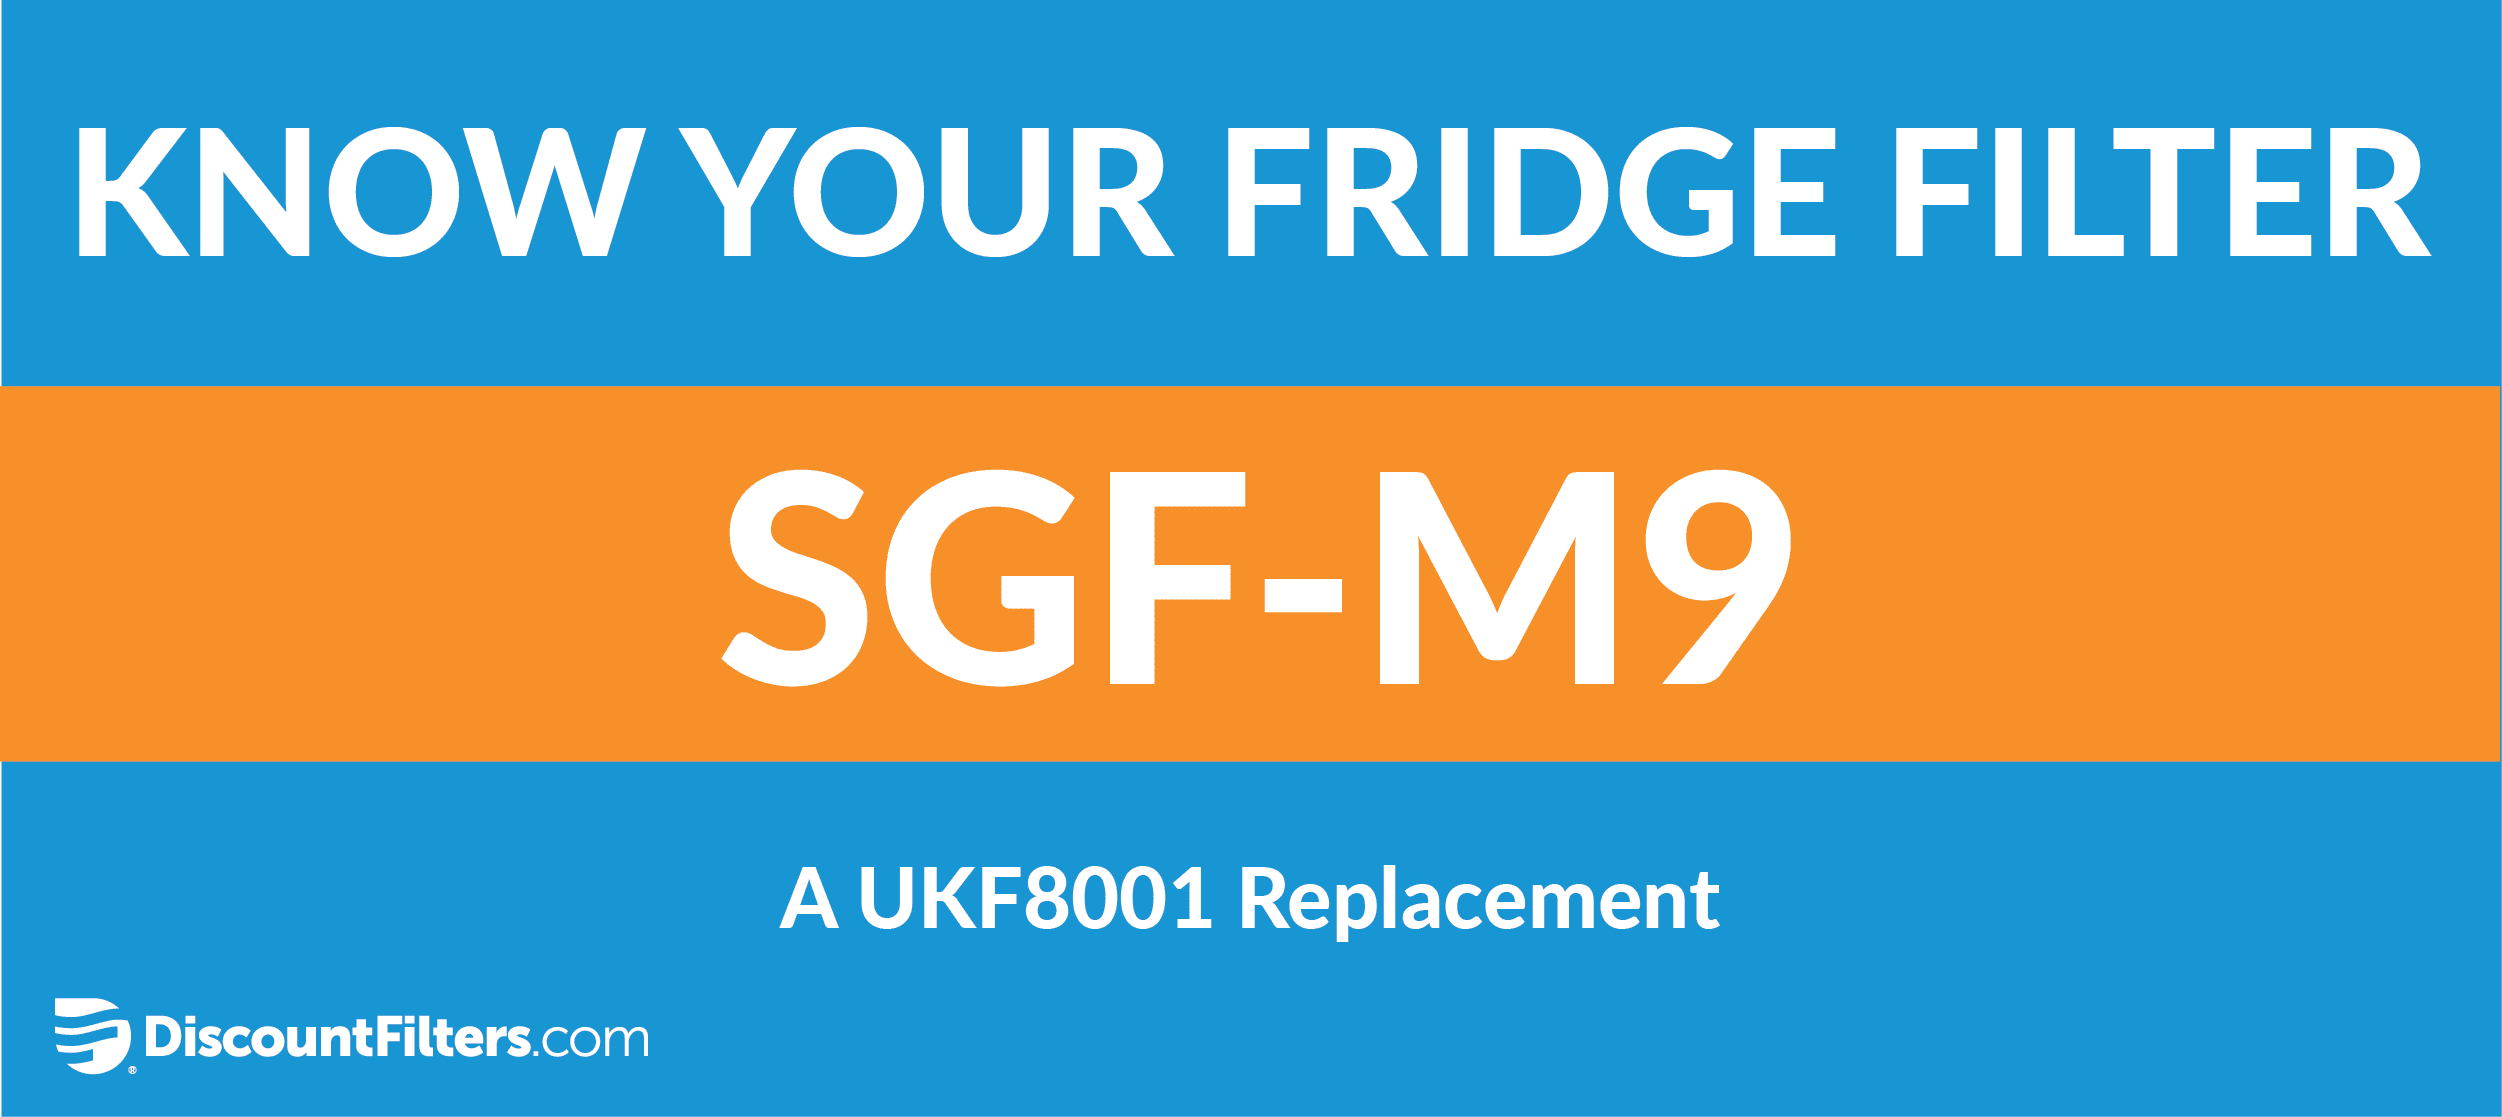 know your fridge filter sgf-m9 ukf8001 replacement